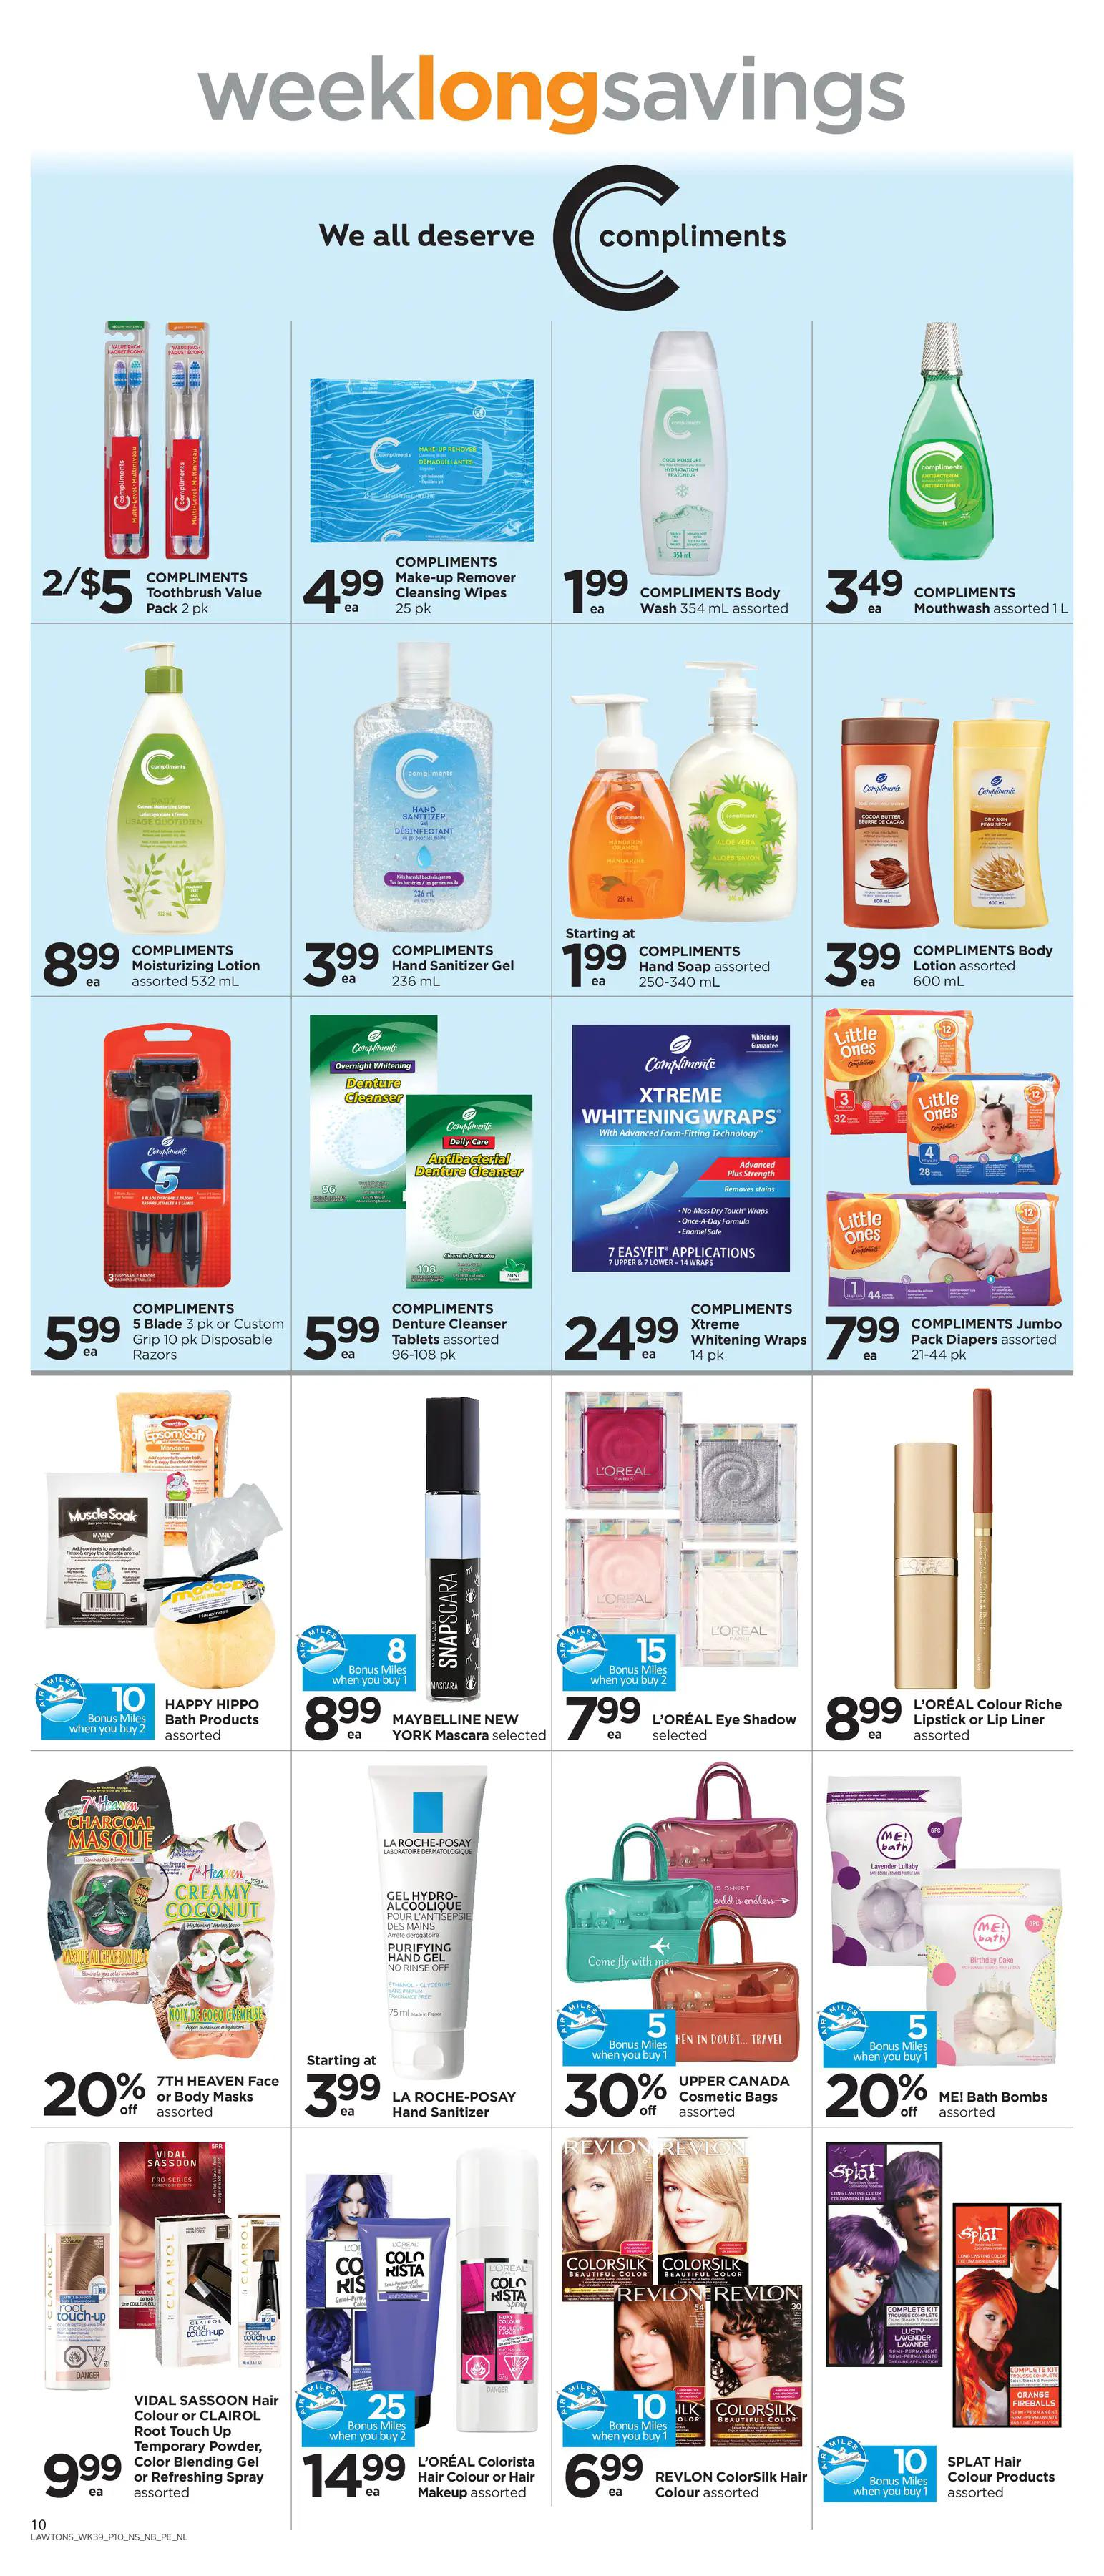 Lawtons Drugs - Weekly Flyer Specials - Page 9